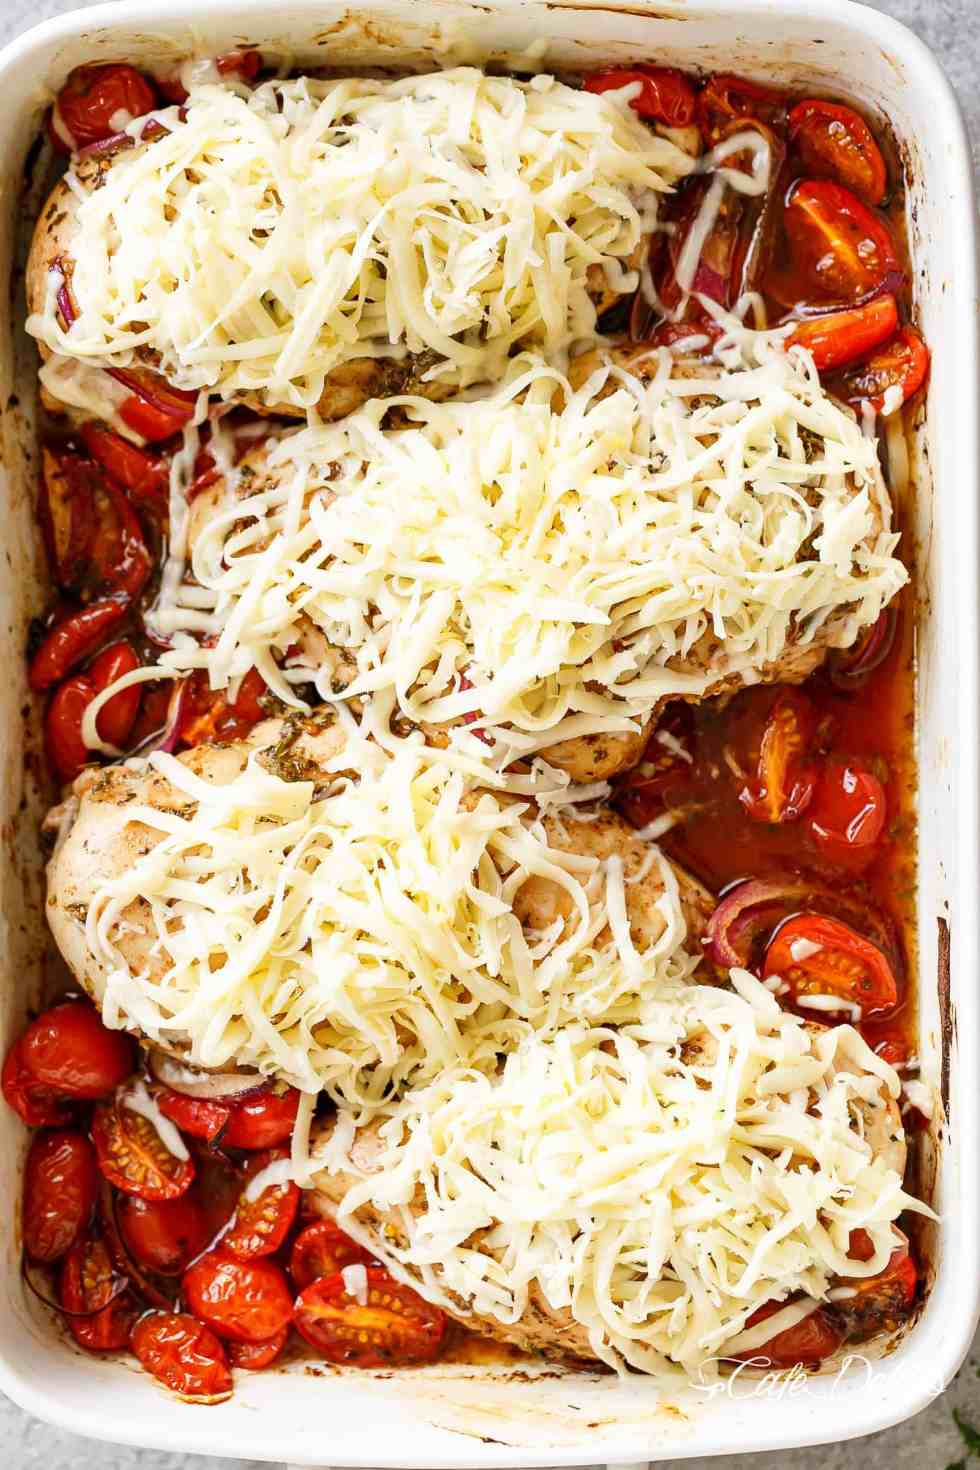 Balsamic Baked Chicken Breast rubbed with garlic and herbs, dripping with a tomato balsamic sauce and melted mozzarella cheese! EASY chicken recipe! | https://cafedelites.com